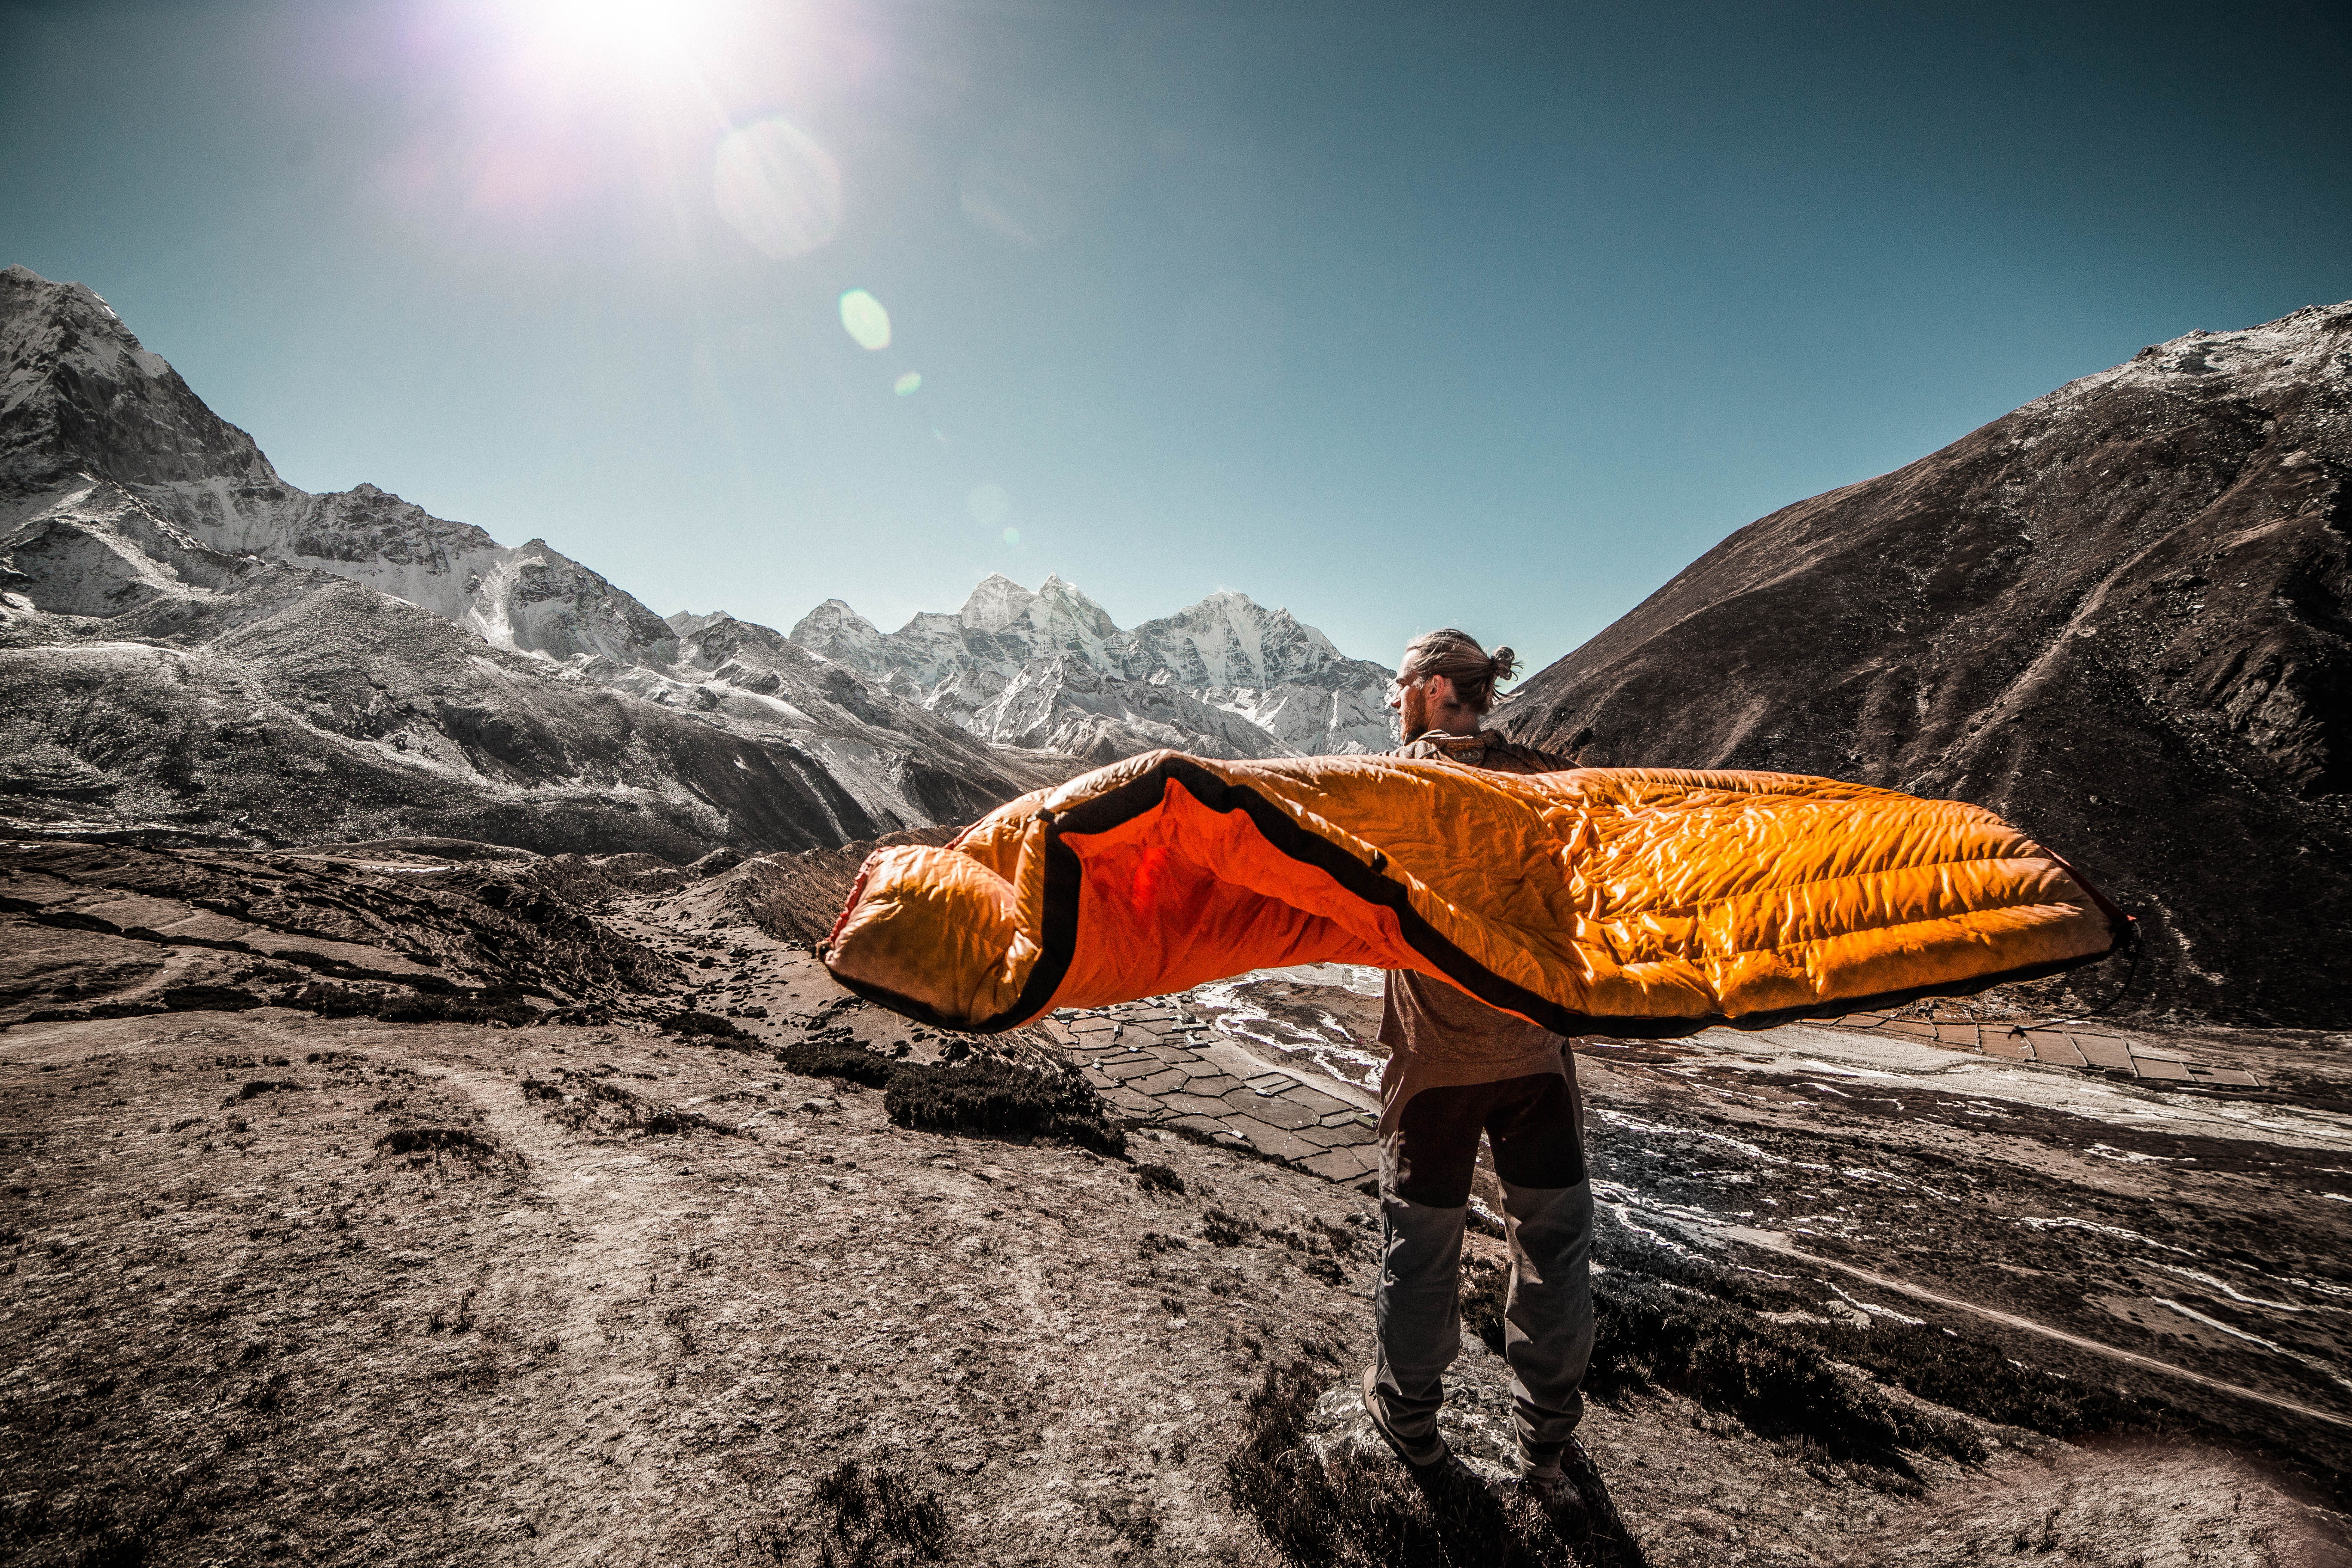 Man Standing on field between cliffs holding the best sleeping bag